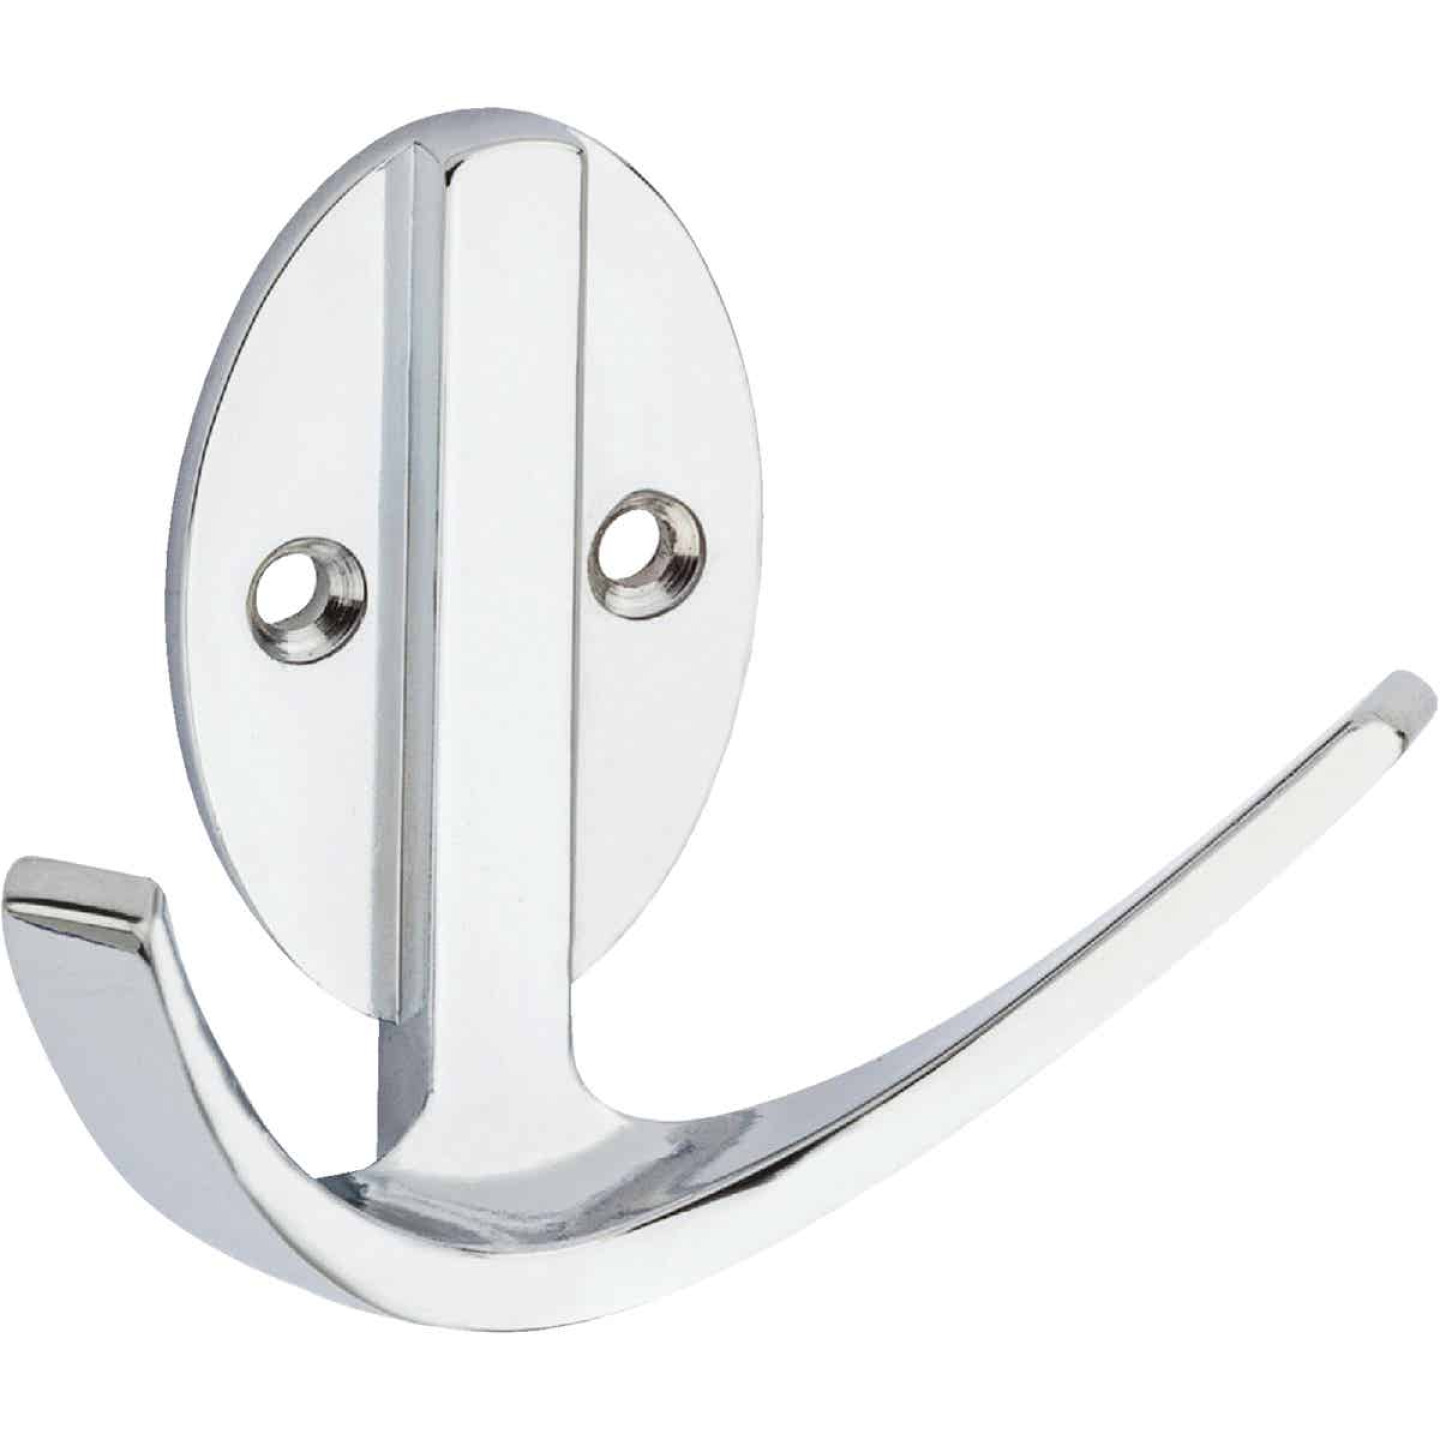 Stanley Home Designs Chrome Modern Double Robe Wardrobe Hook Image 1